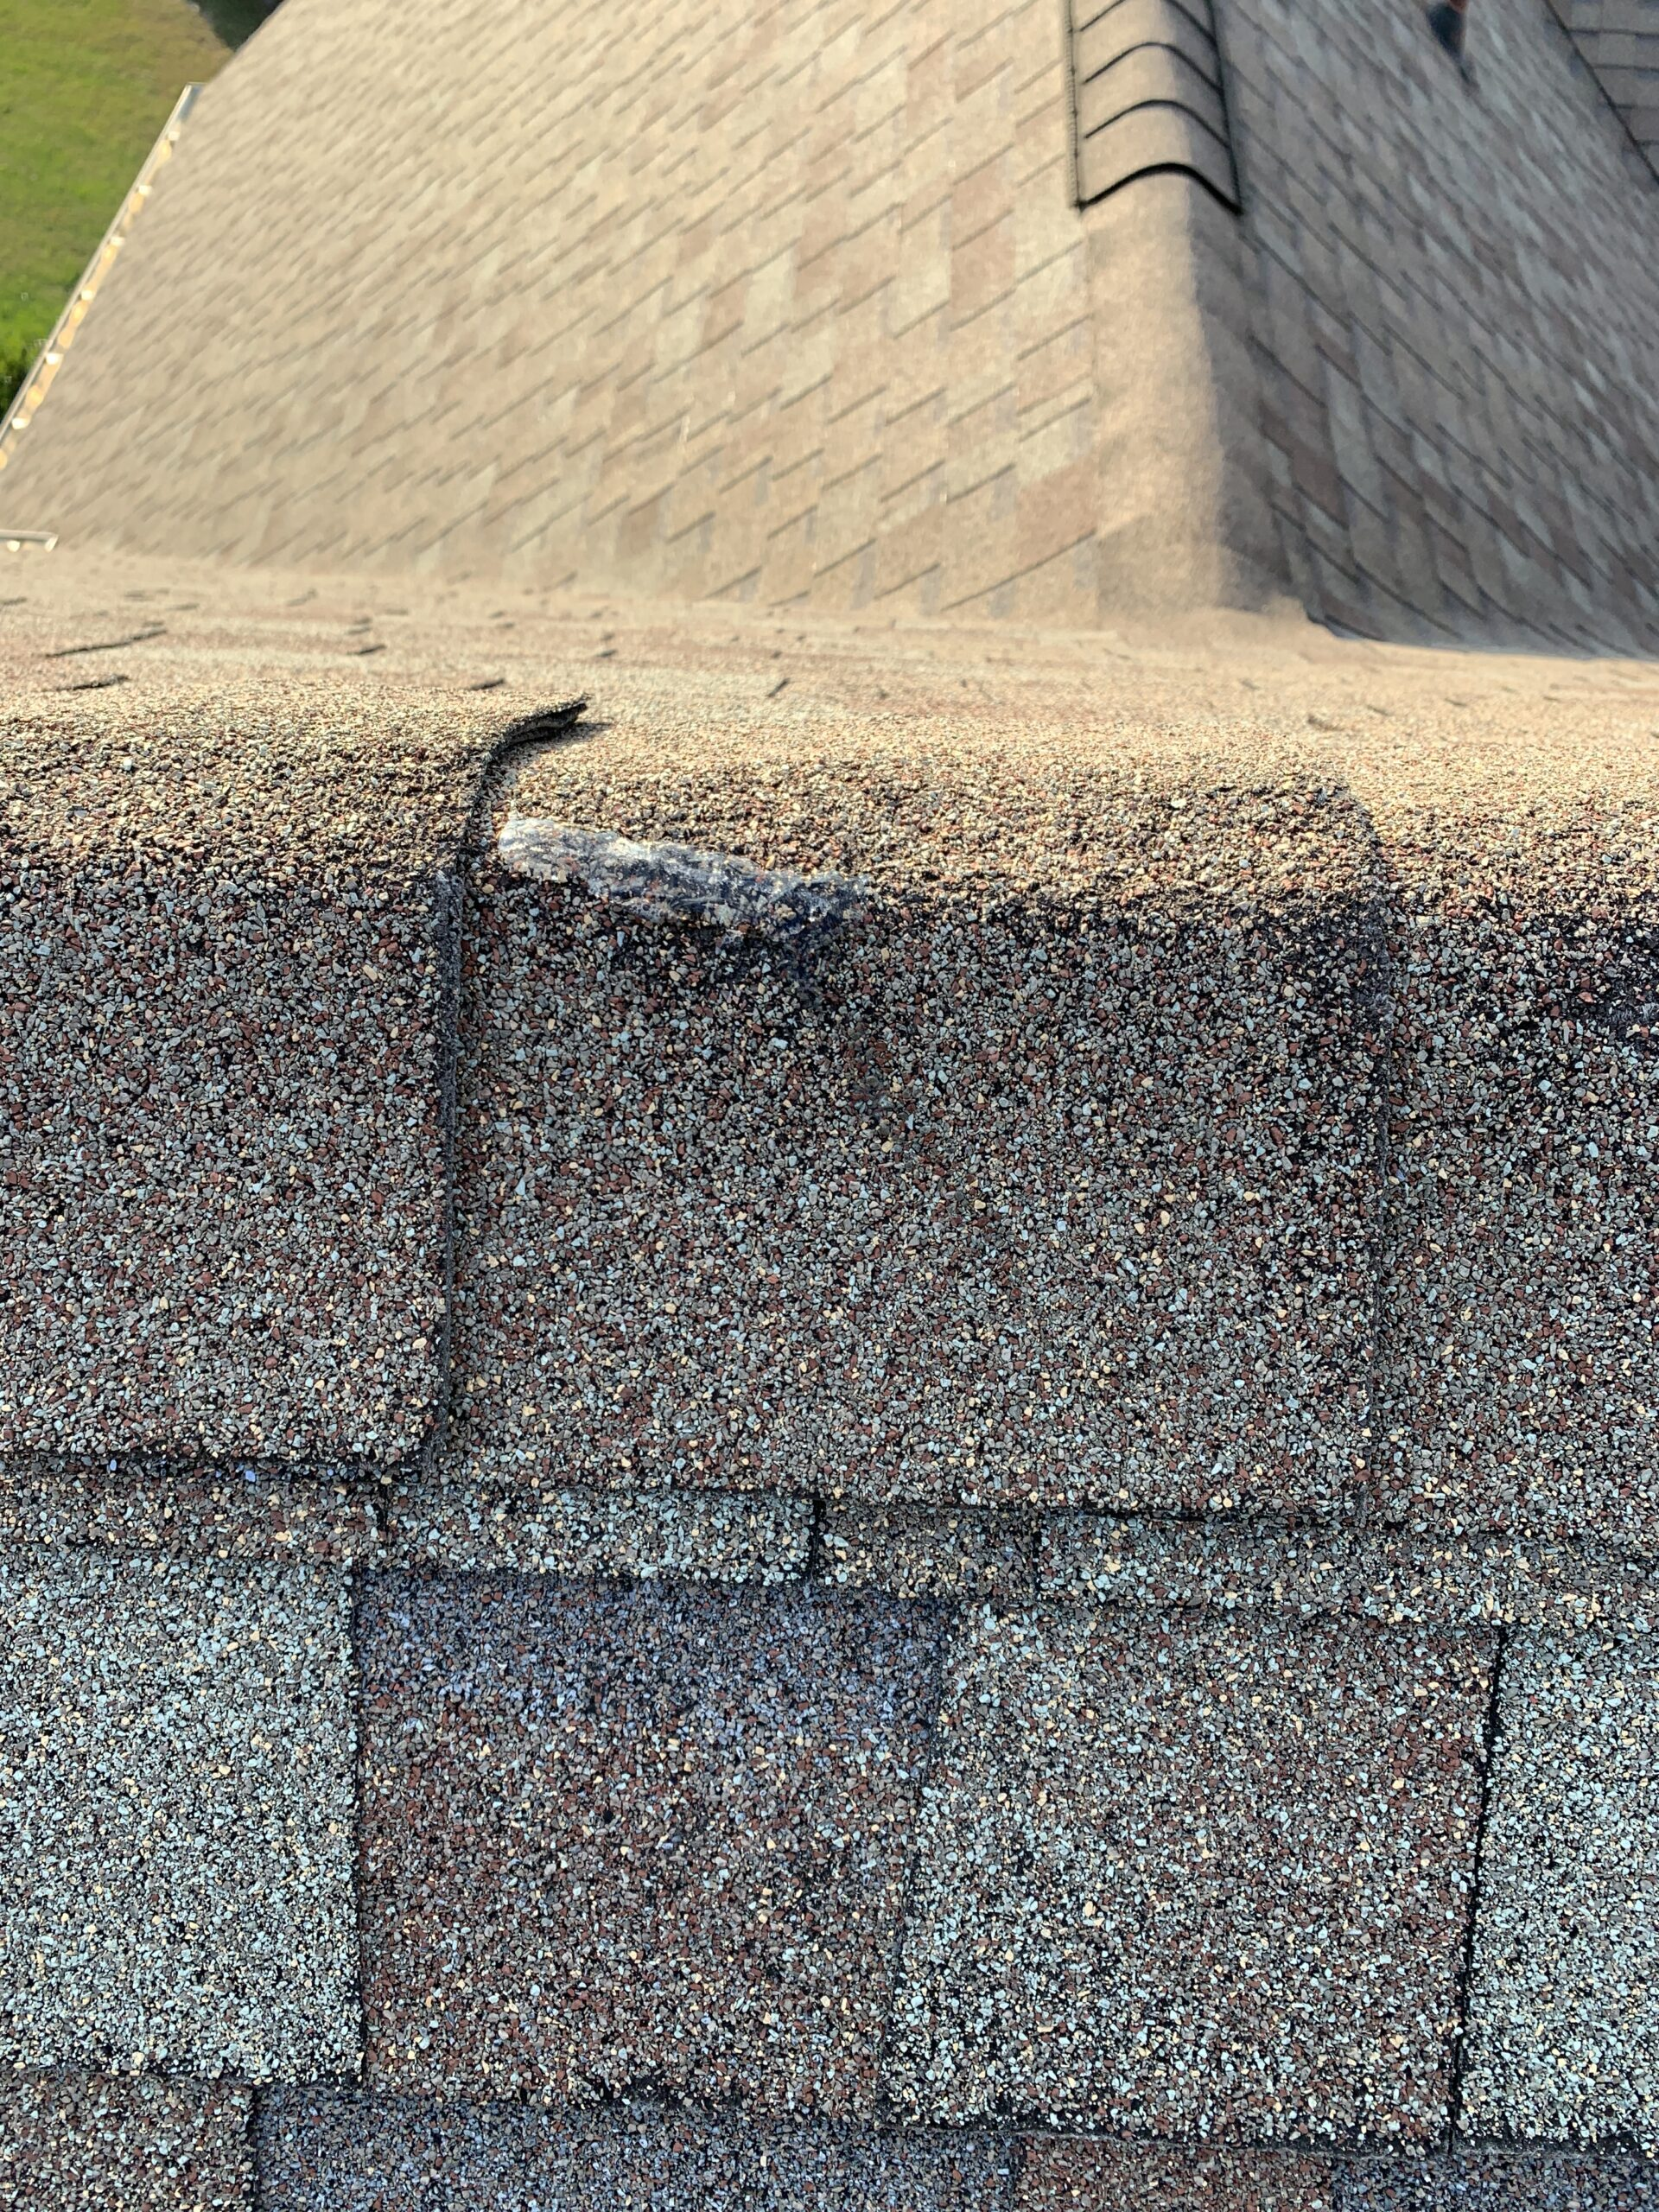 A hole from some type of impact on the ridge cap shingles is likely to cause a leak on the very top of the roof. This will need to be sealed or replaced